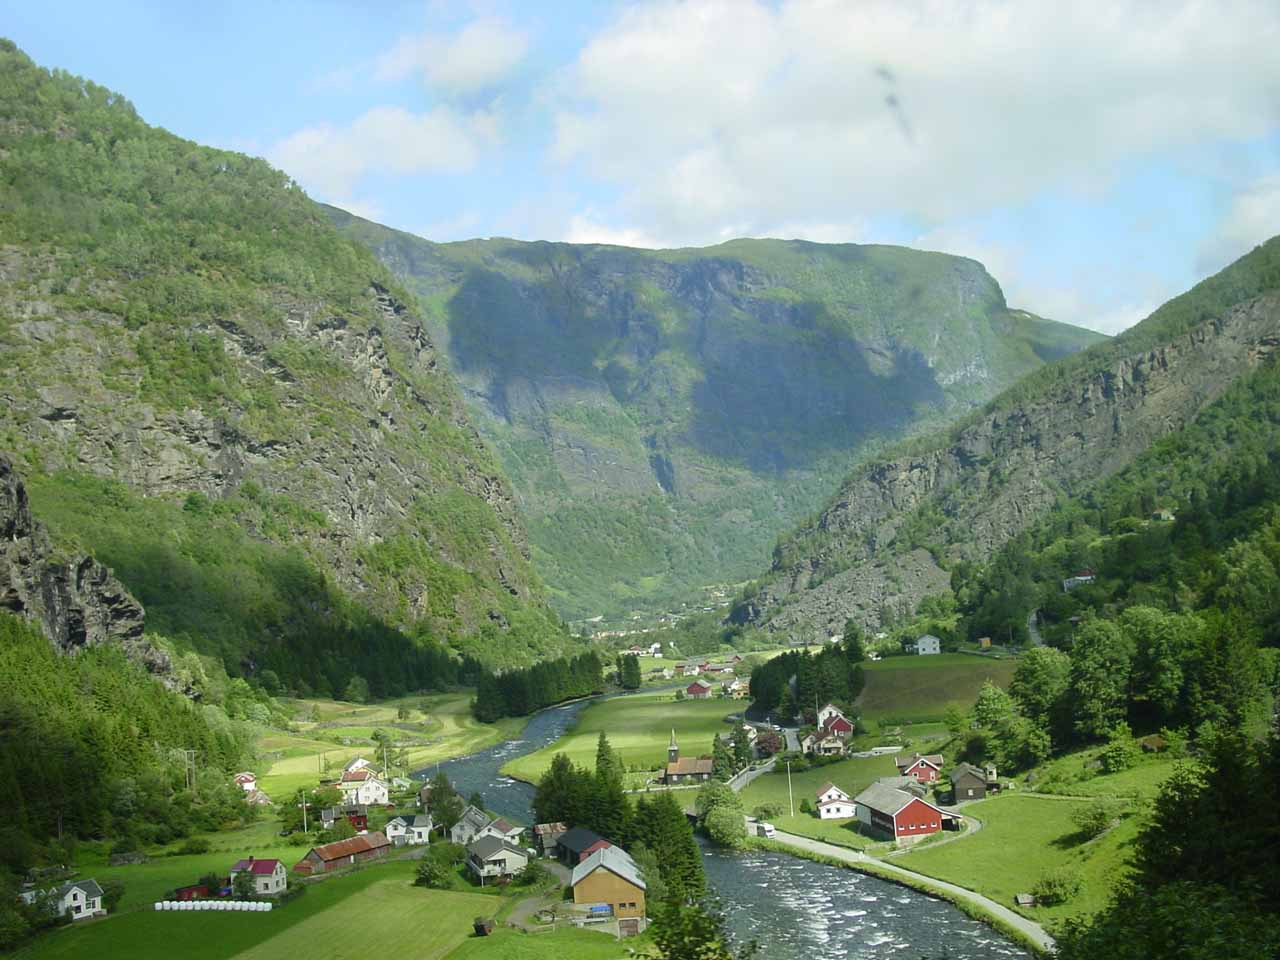 Further to the east of the steep Nærøydalen Valley was the famous Flamsdalen Valley, which is perhaps most commonly experienced with the Flam Railway